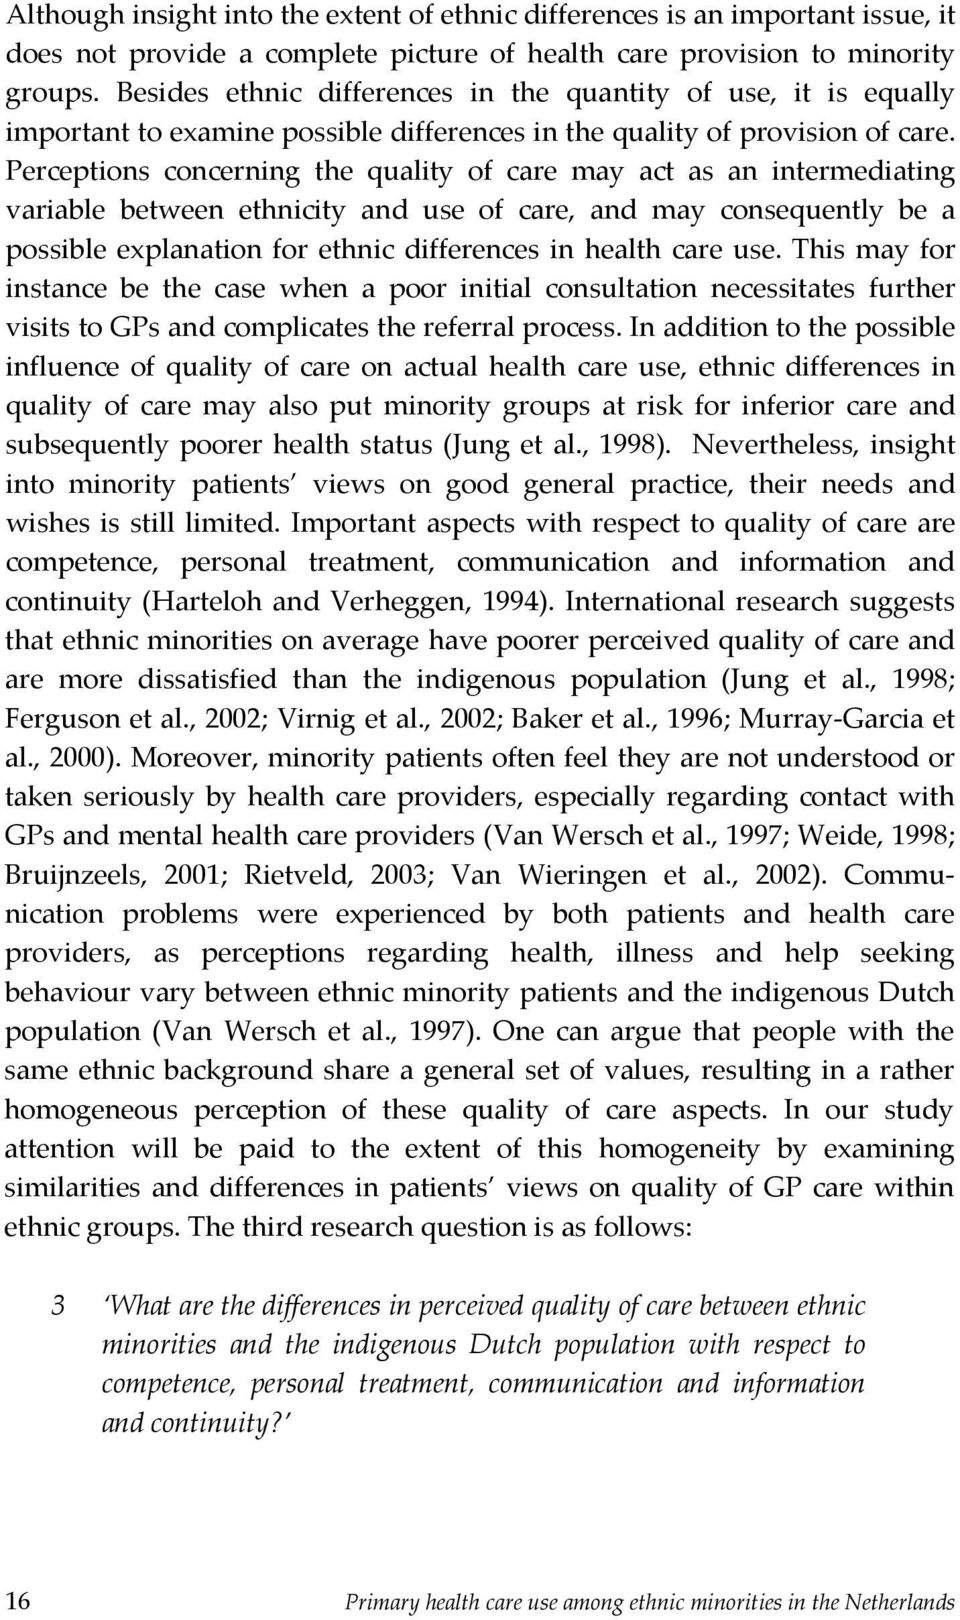 Perceptions concerning the quality of care may act as an intermediating variable between ethnicity and use of care, and may consequently be a possible explanation for ethnic differences in health